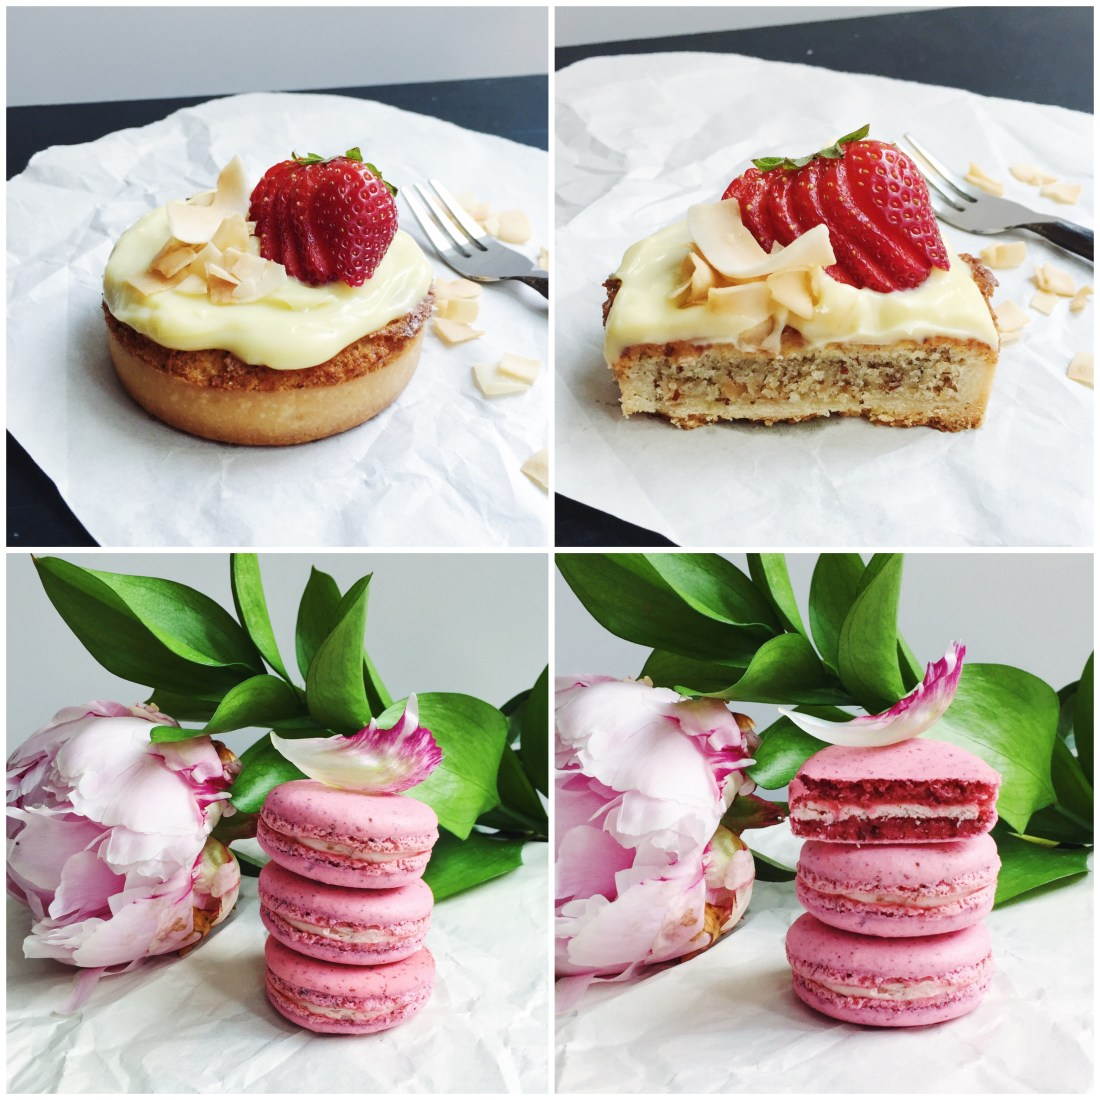 Coconut frangipane tart and strawberry macarons